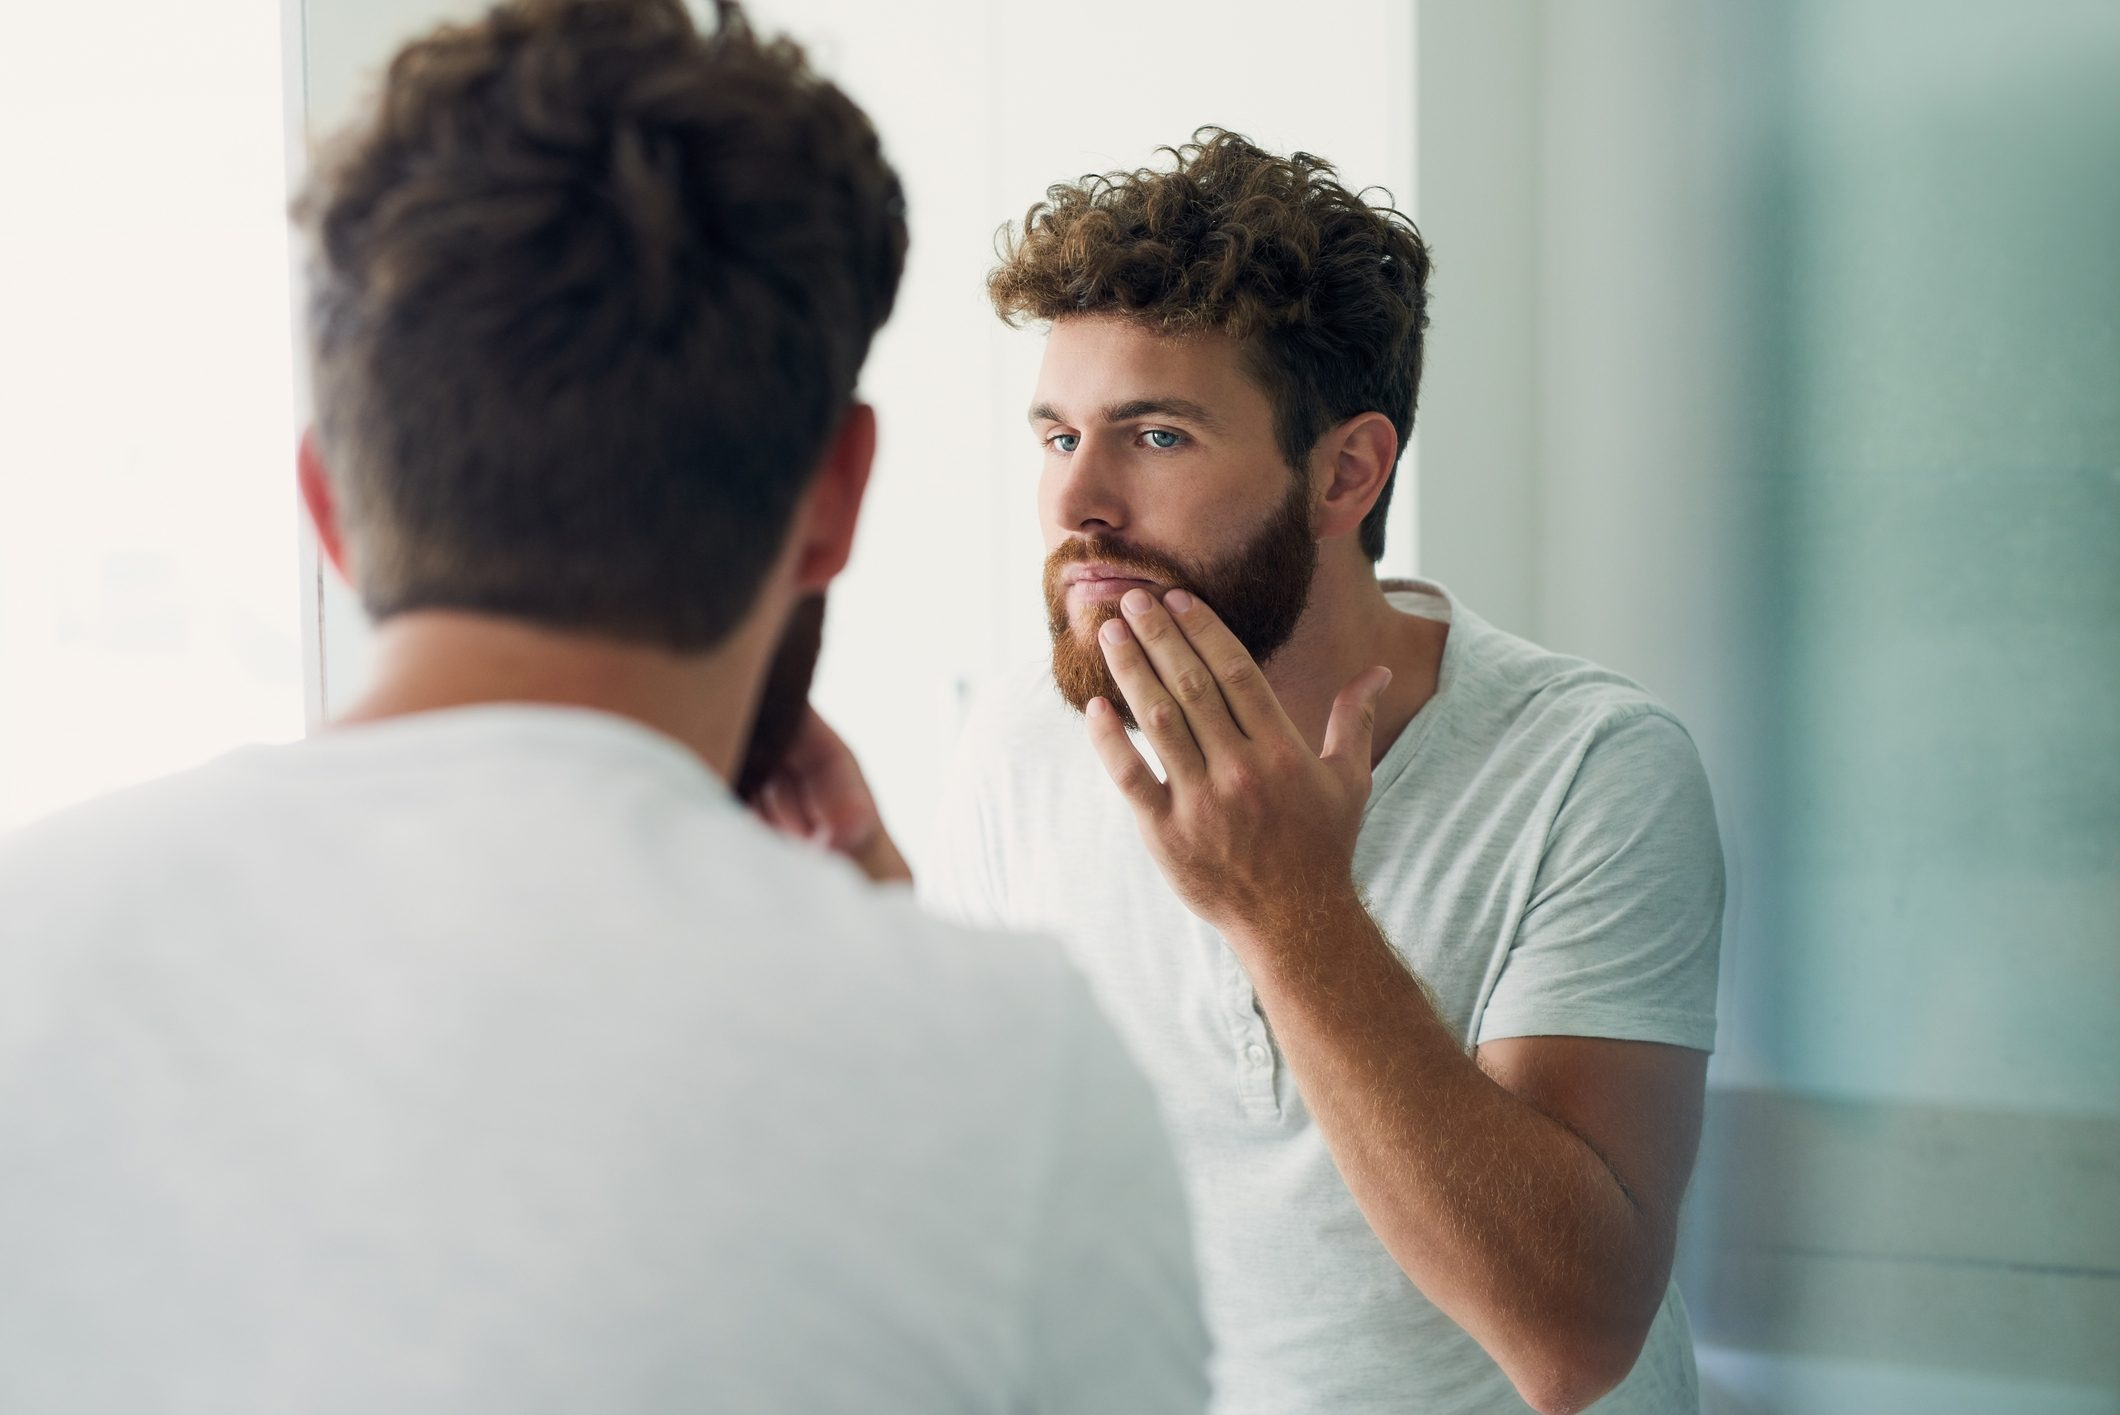 man looking at his beard in the mirror